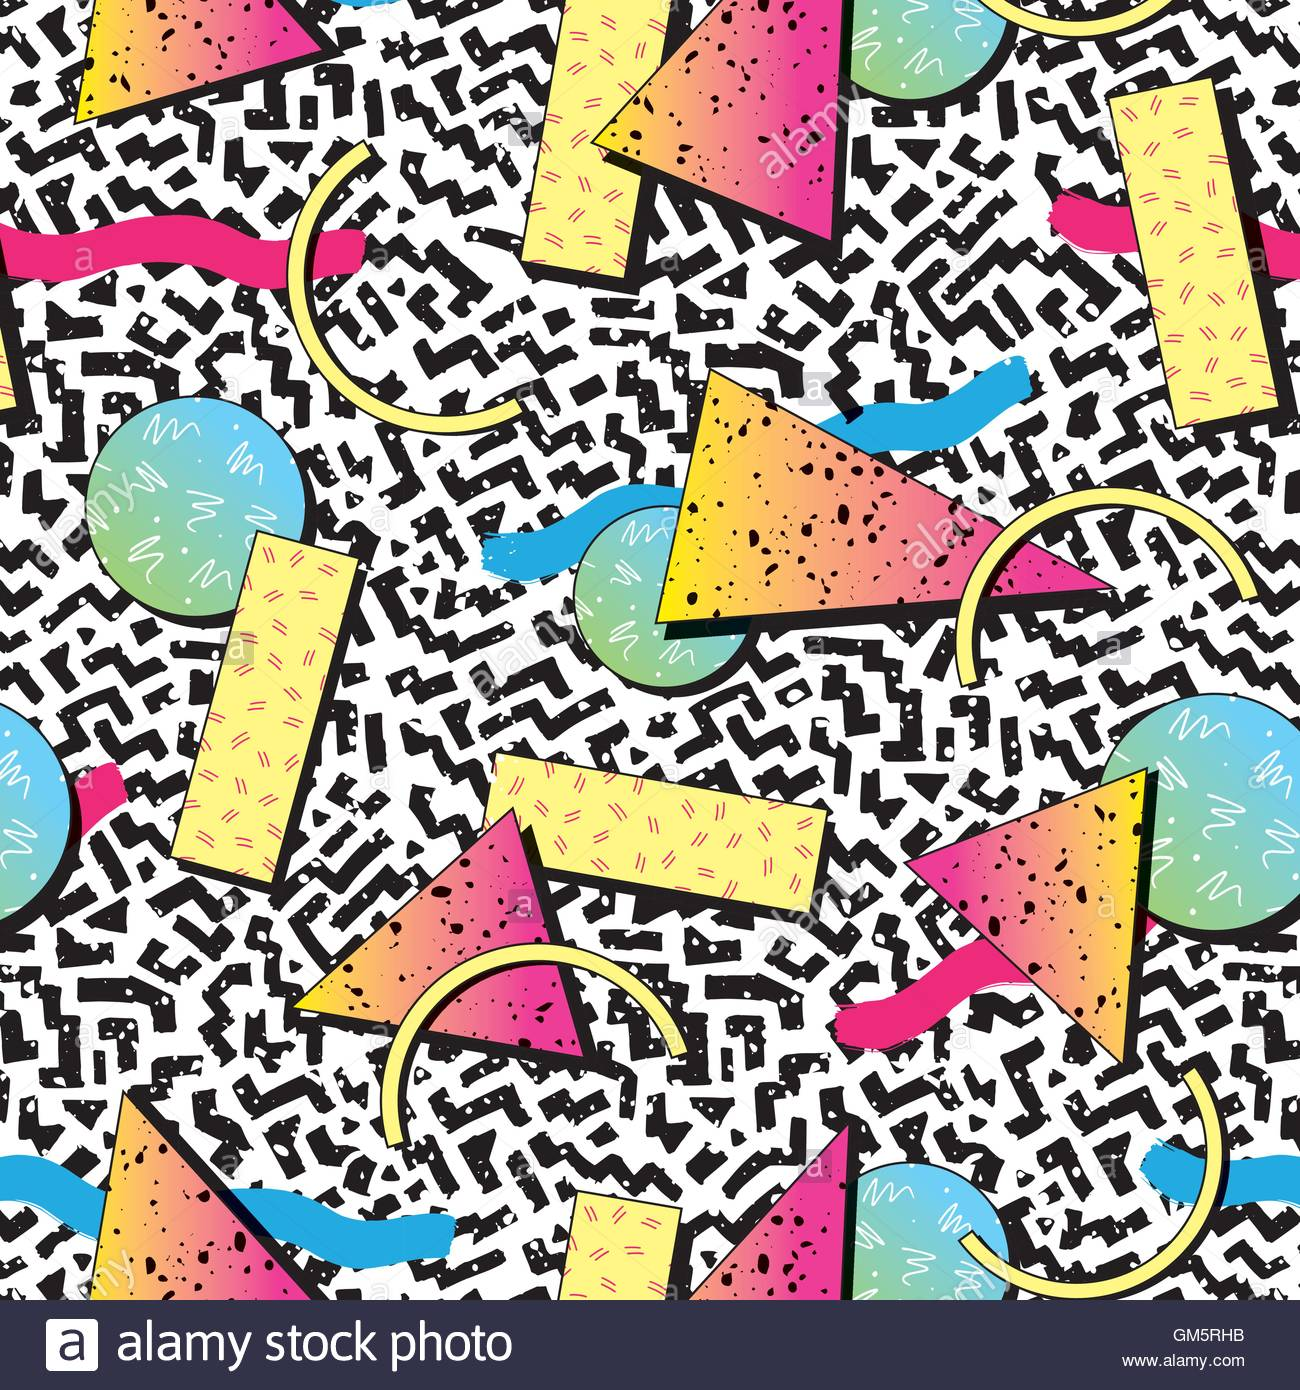 Vibrant And Colourful Patterns Inspired By The Graphic